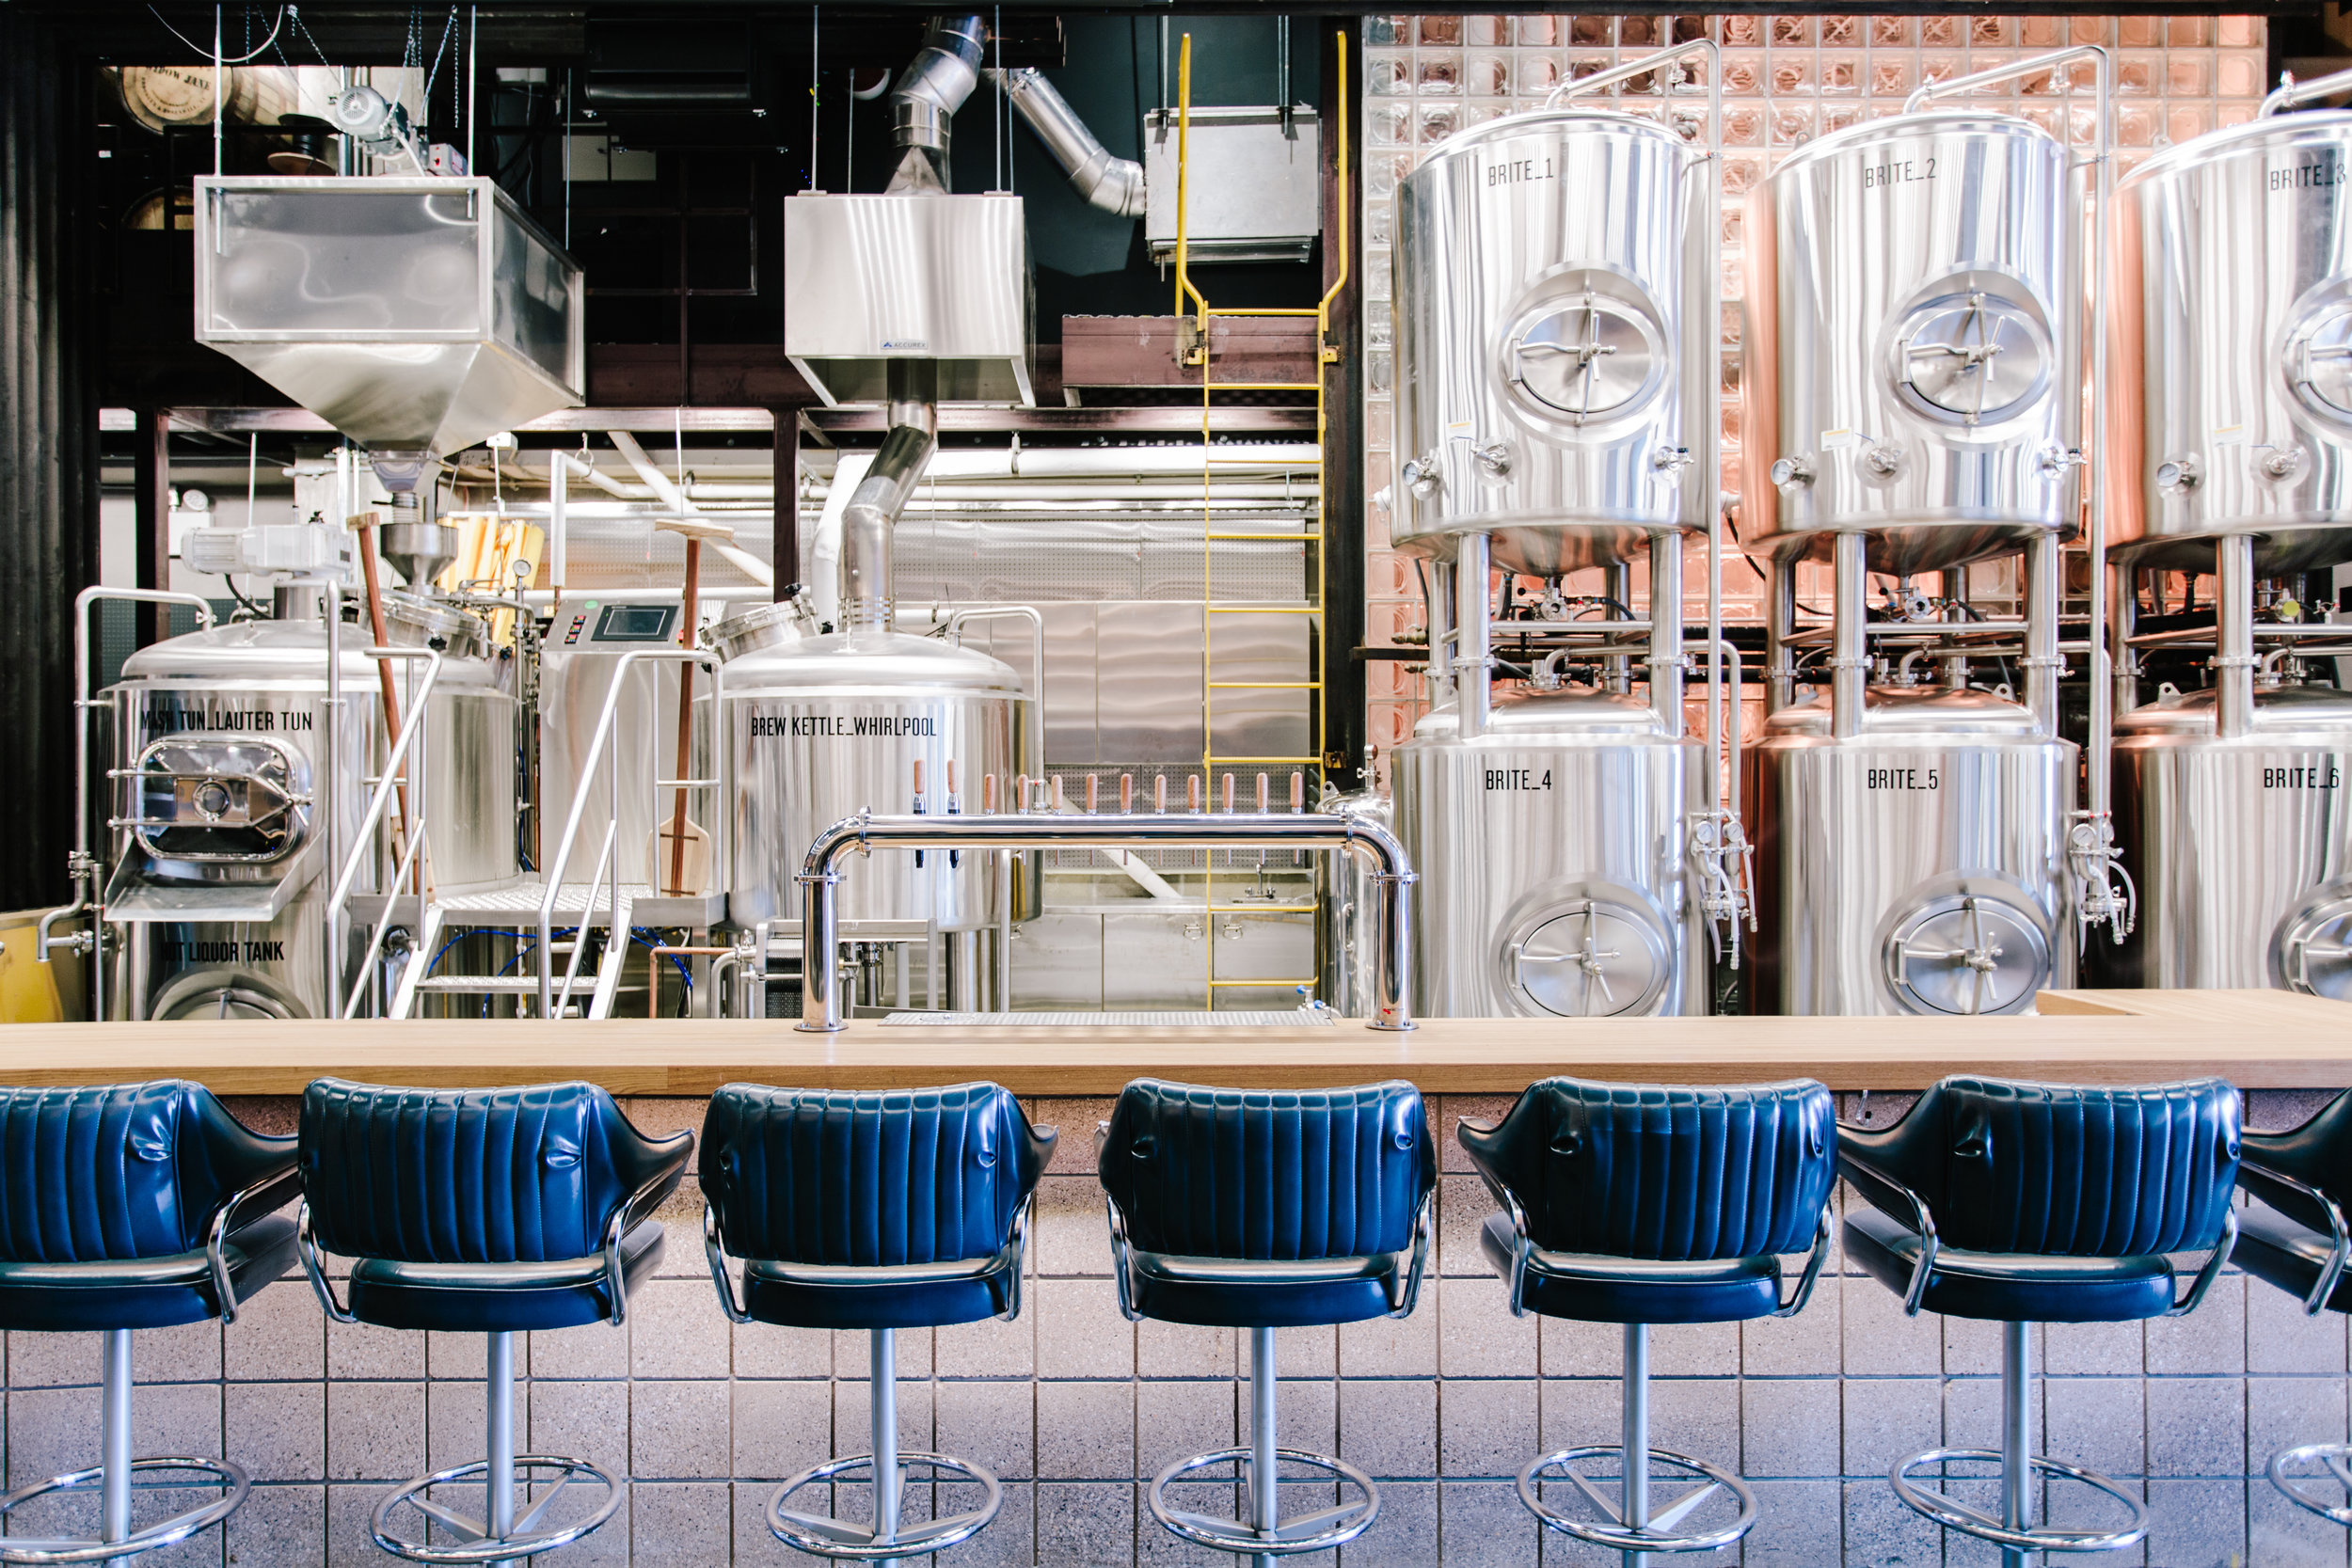 Circa Brewing Co., photo by Alex Welsh